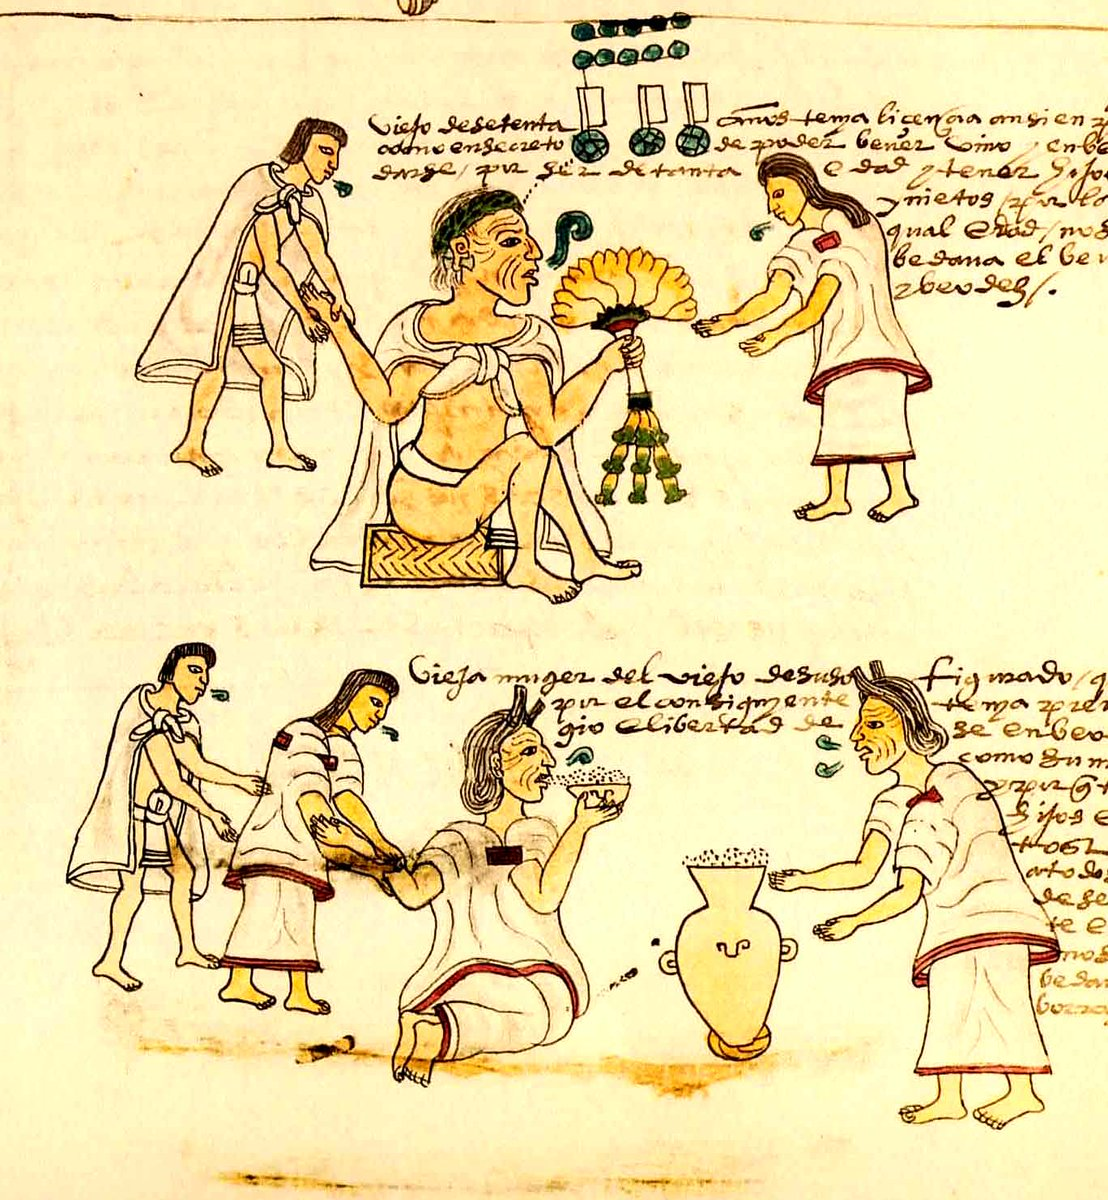 A descriptive cartoon of the Aztec people goin about daily life, in various states of clothing. Most are wearing robes, and some are clad in loincloths. Public domain via Wikipedia.